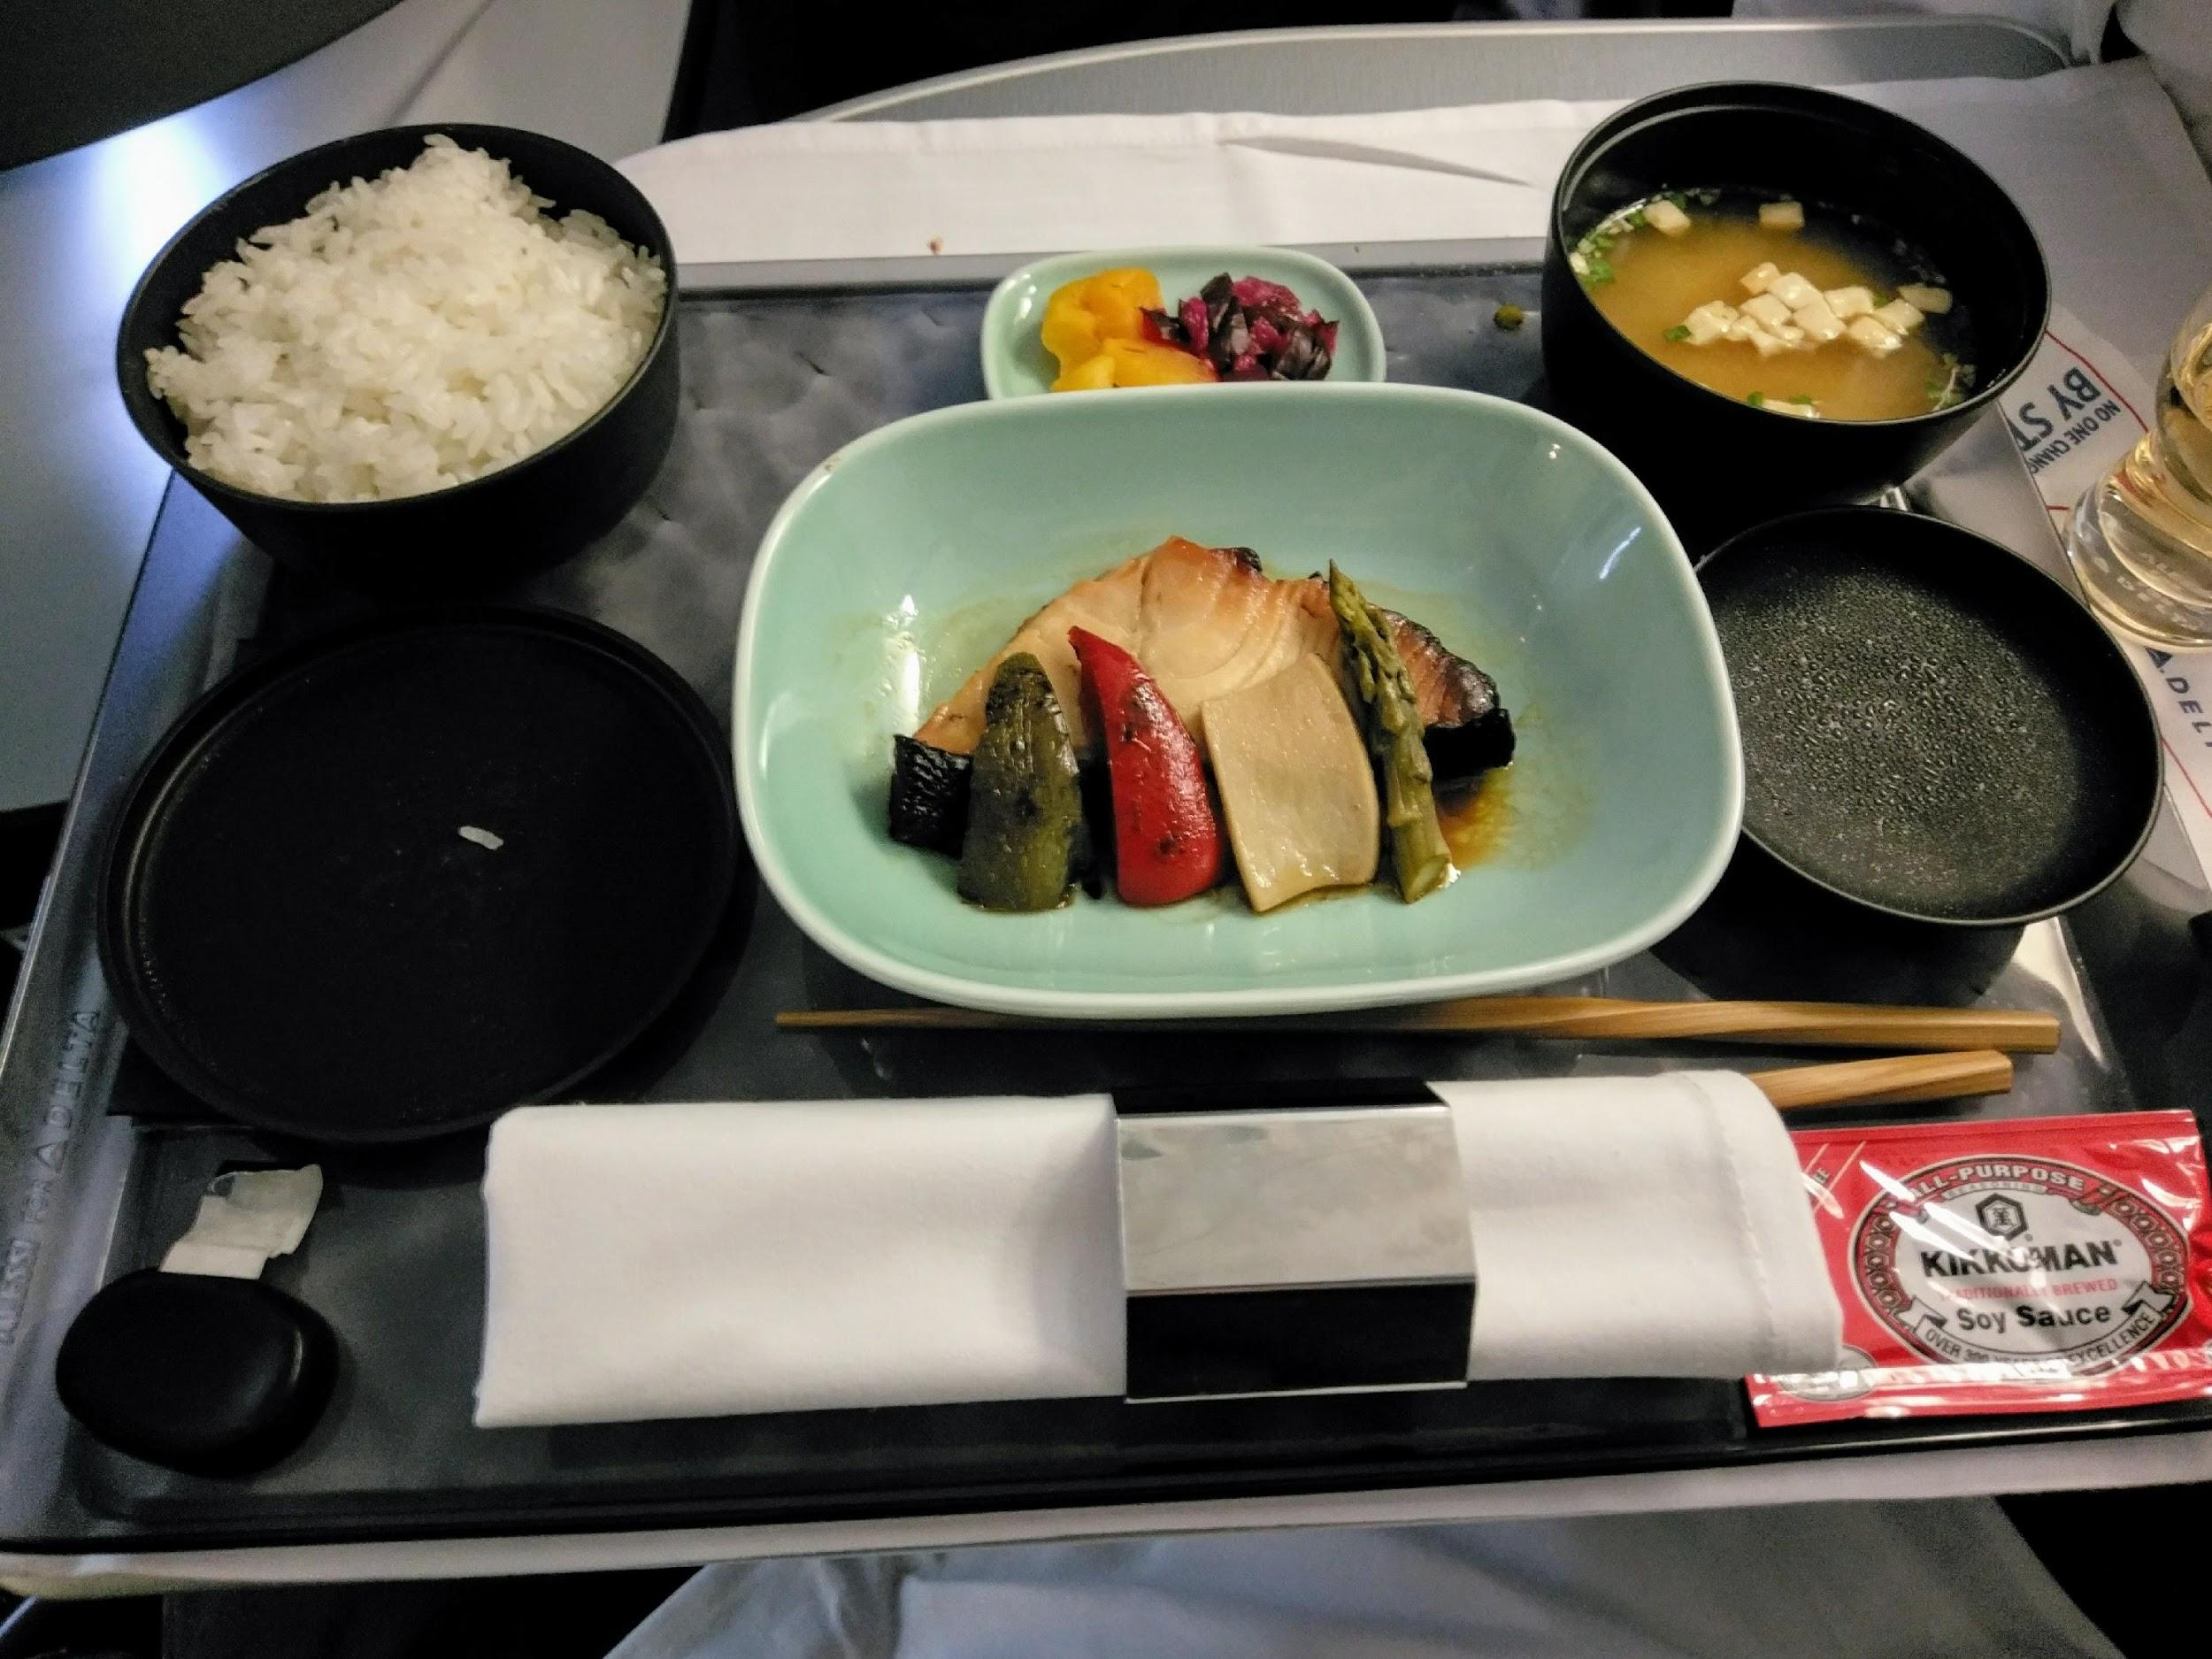 Delta 747 Business Class food